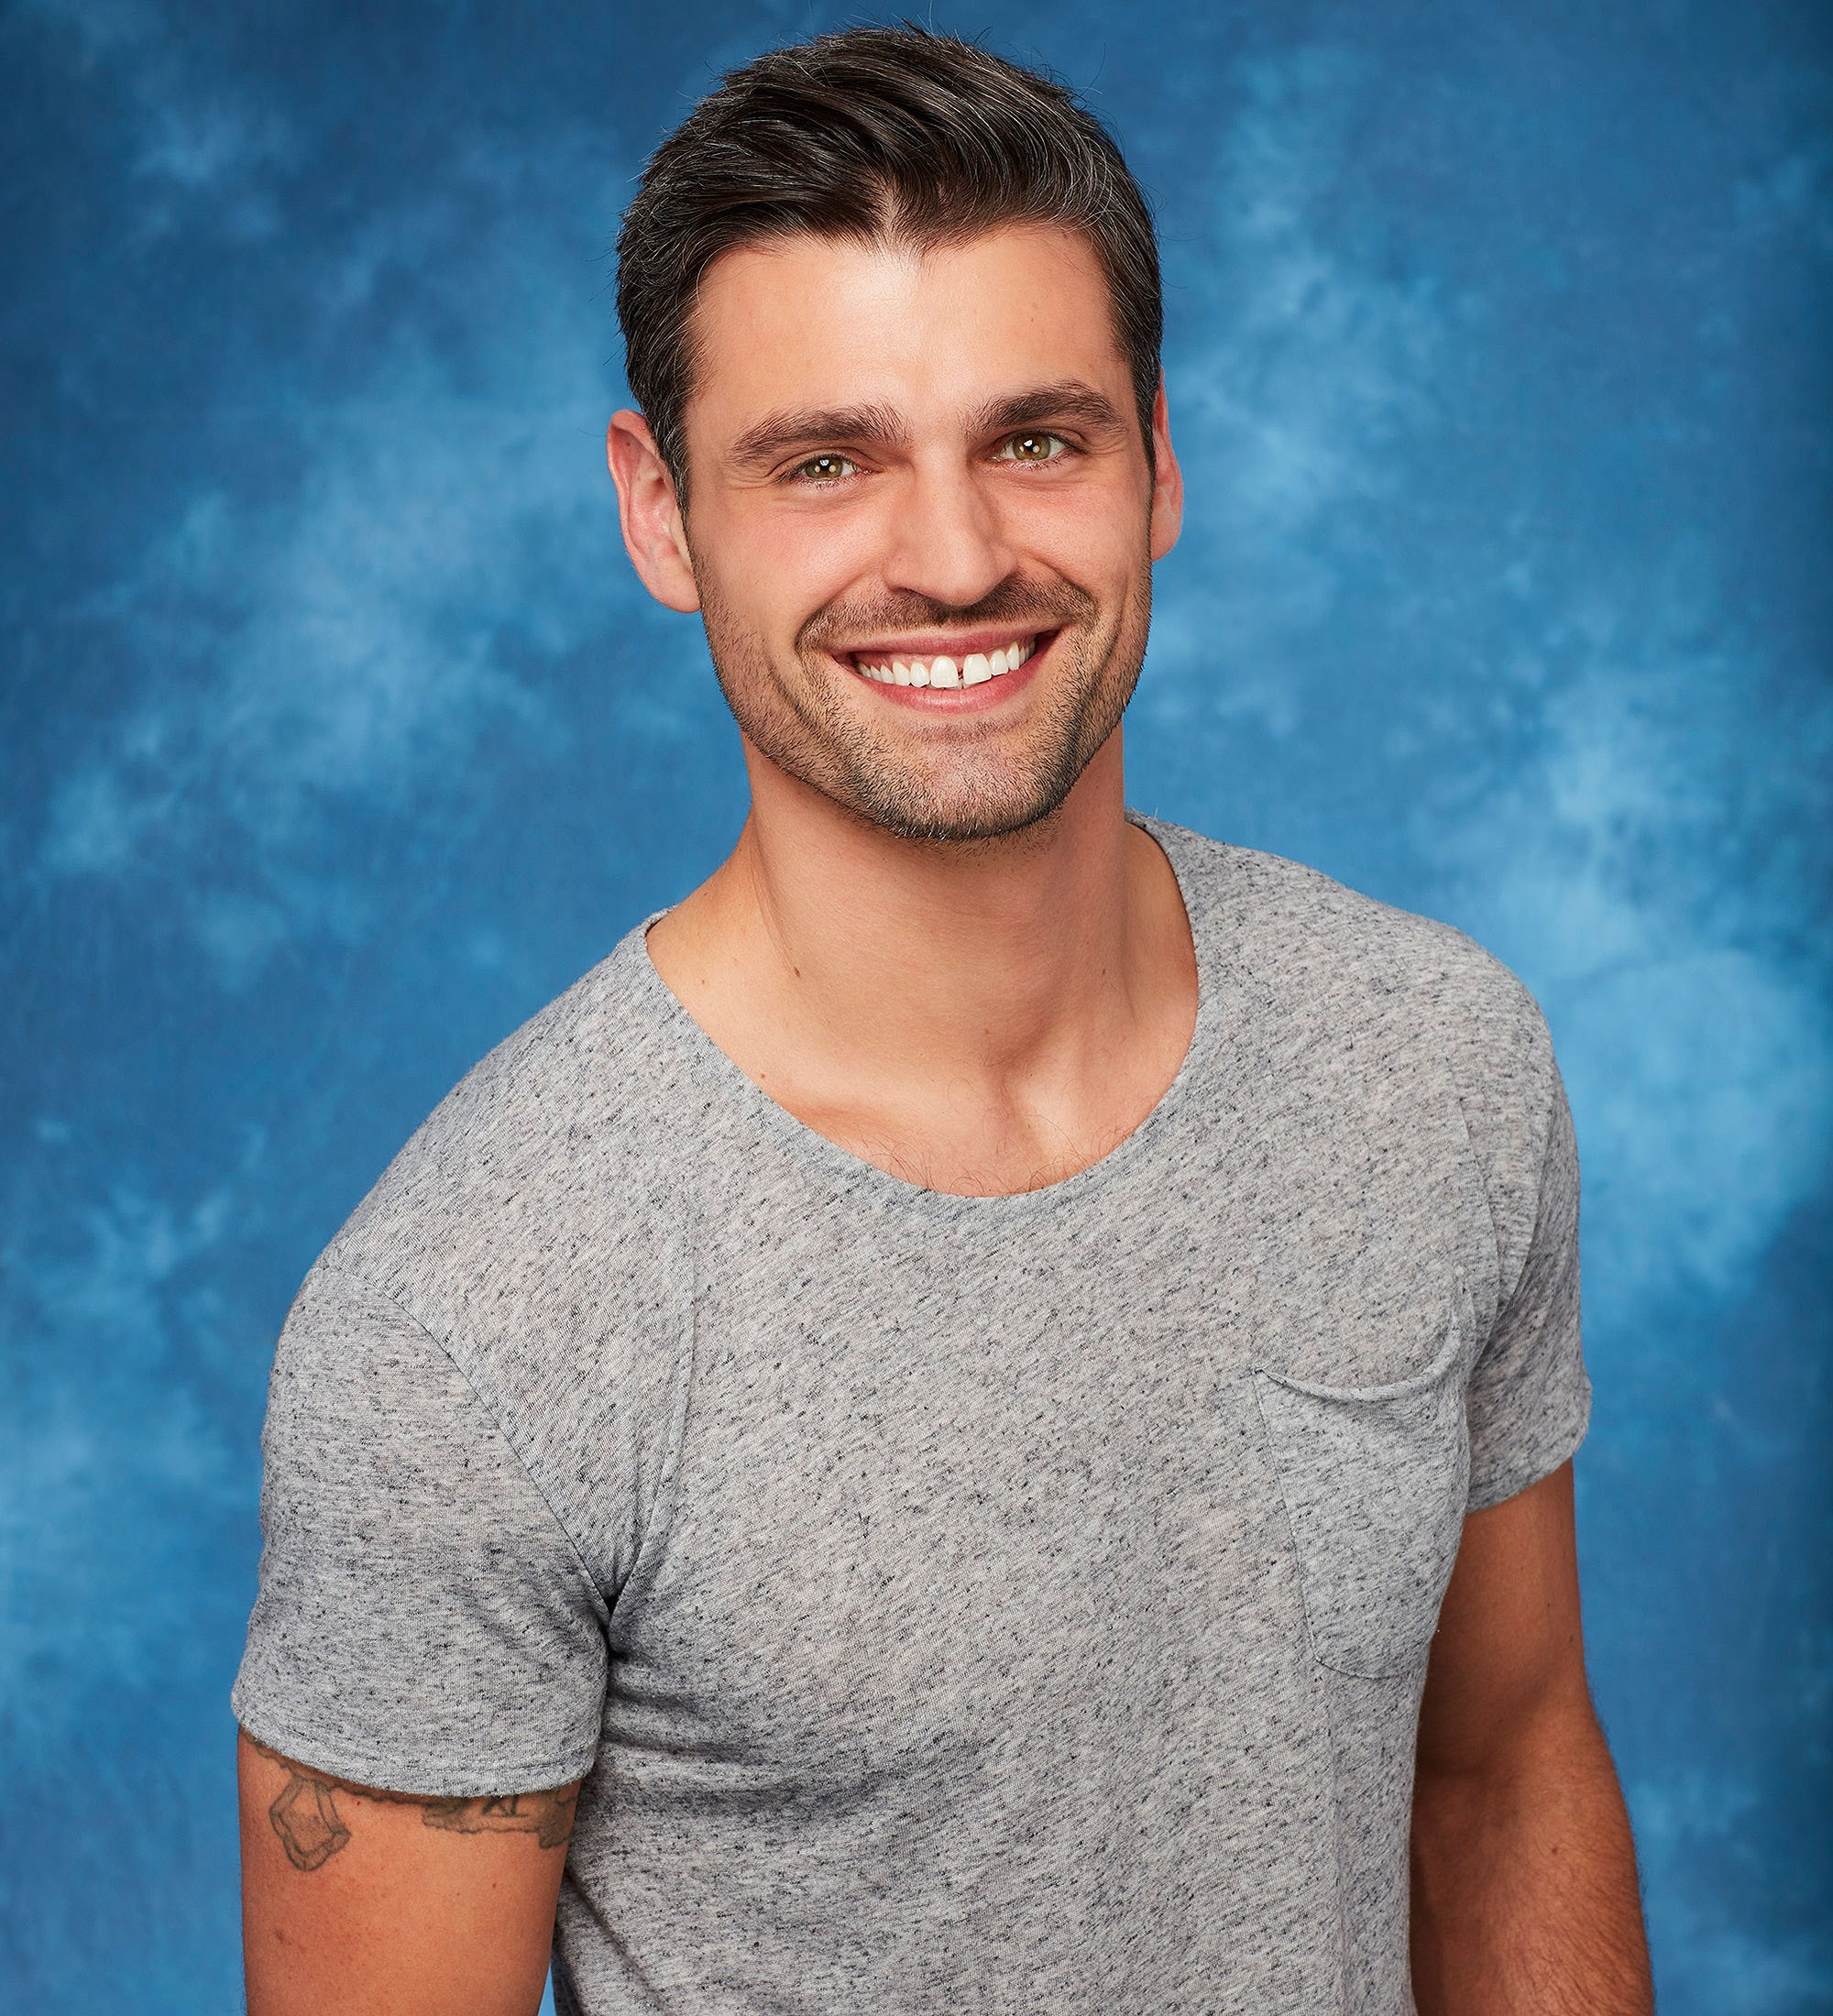 This is who won 'The Bachelorette'